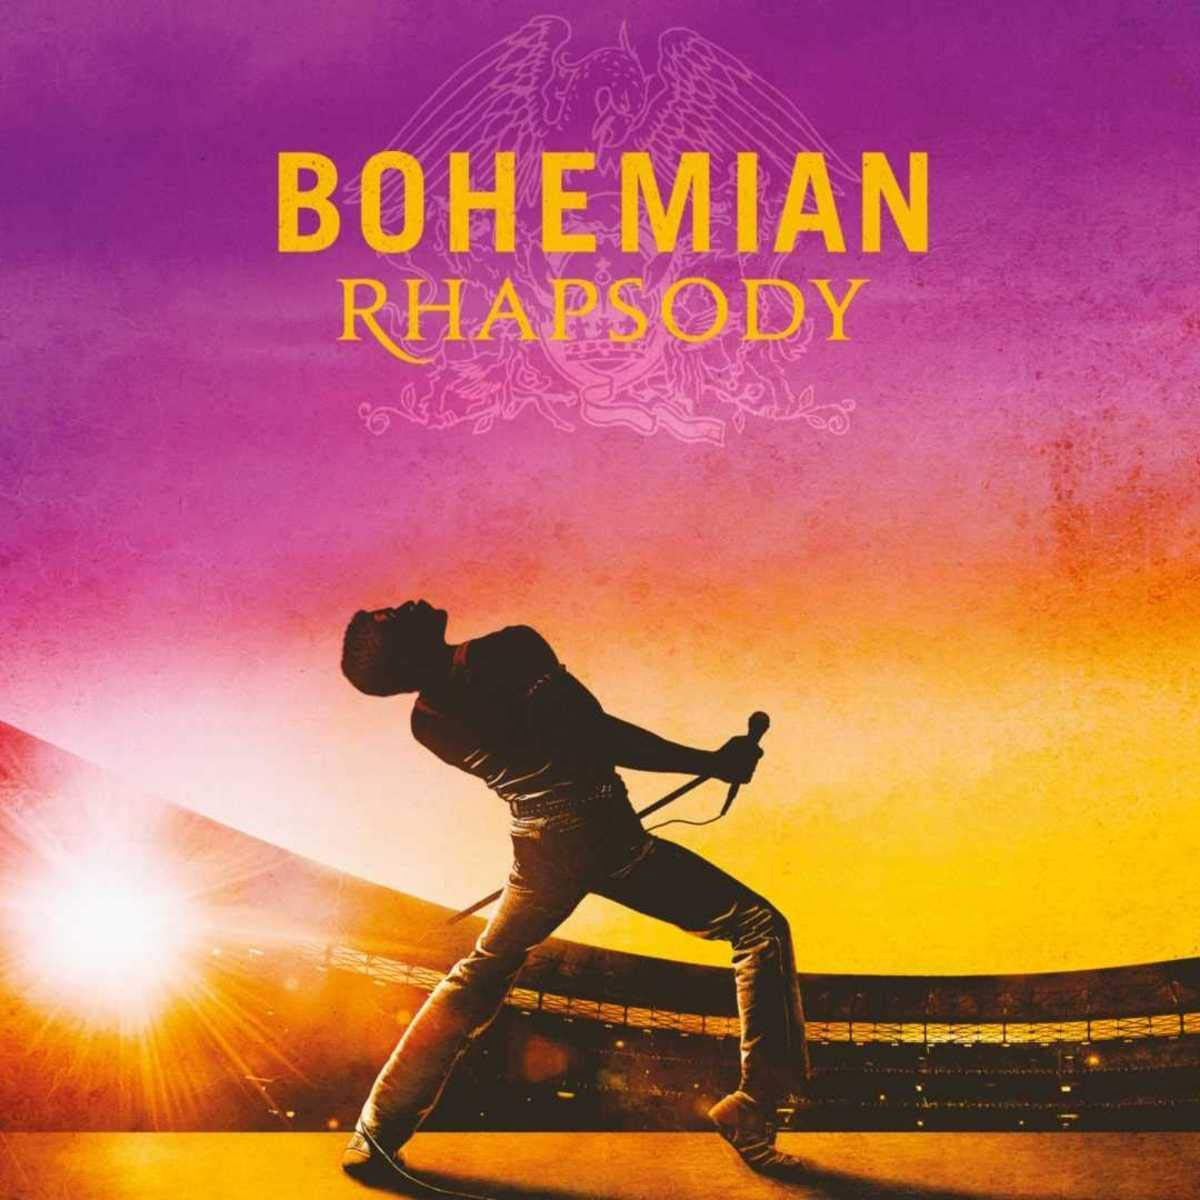 Queen Queen. Bohemian Rhapsody learning to live the love we promise